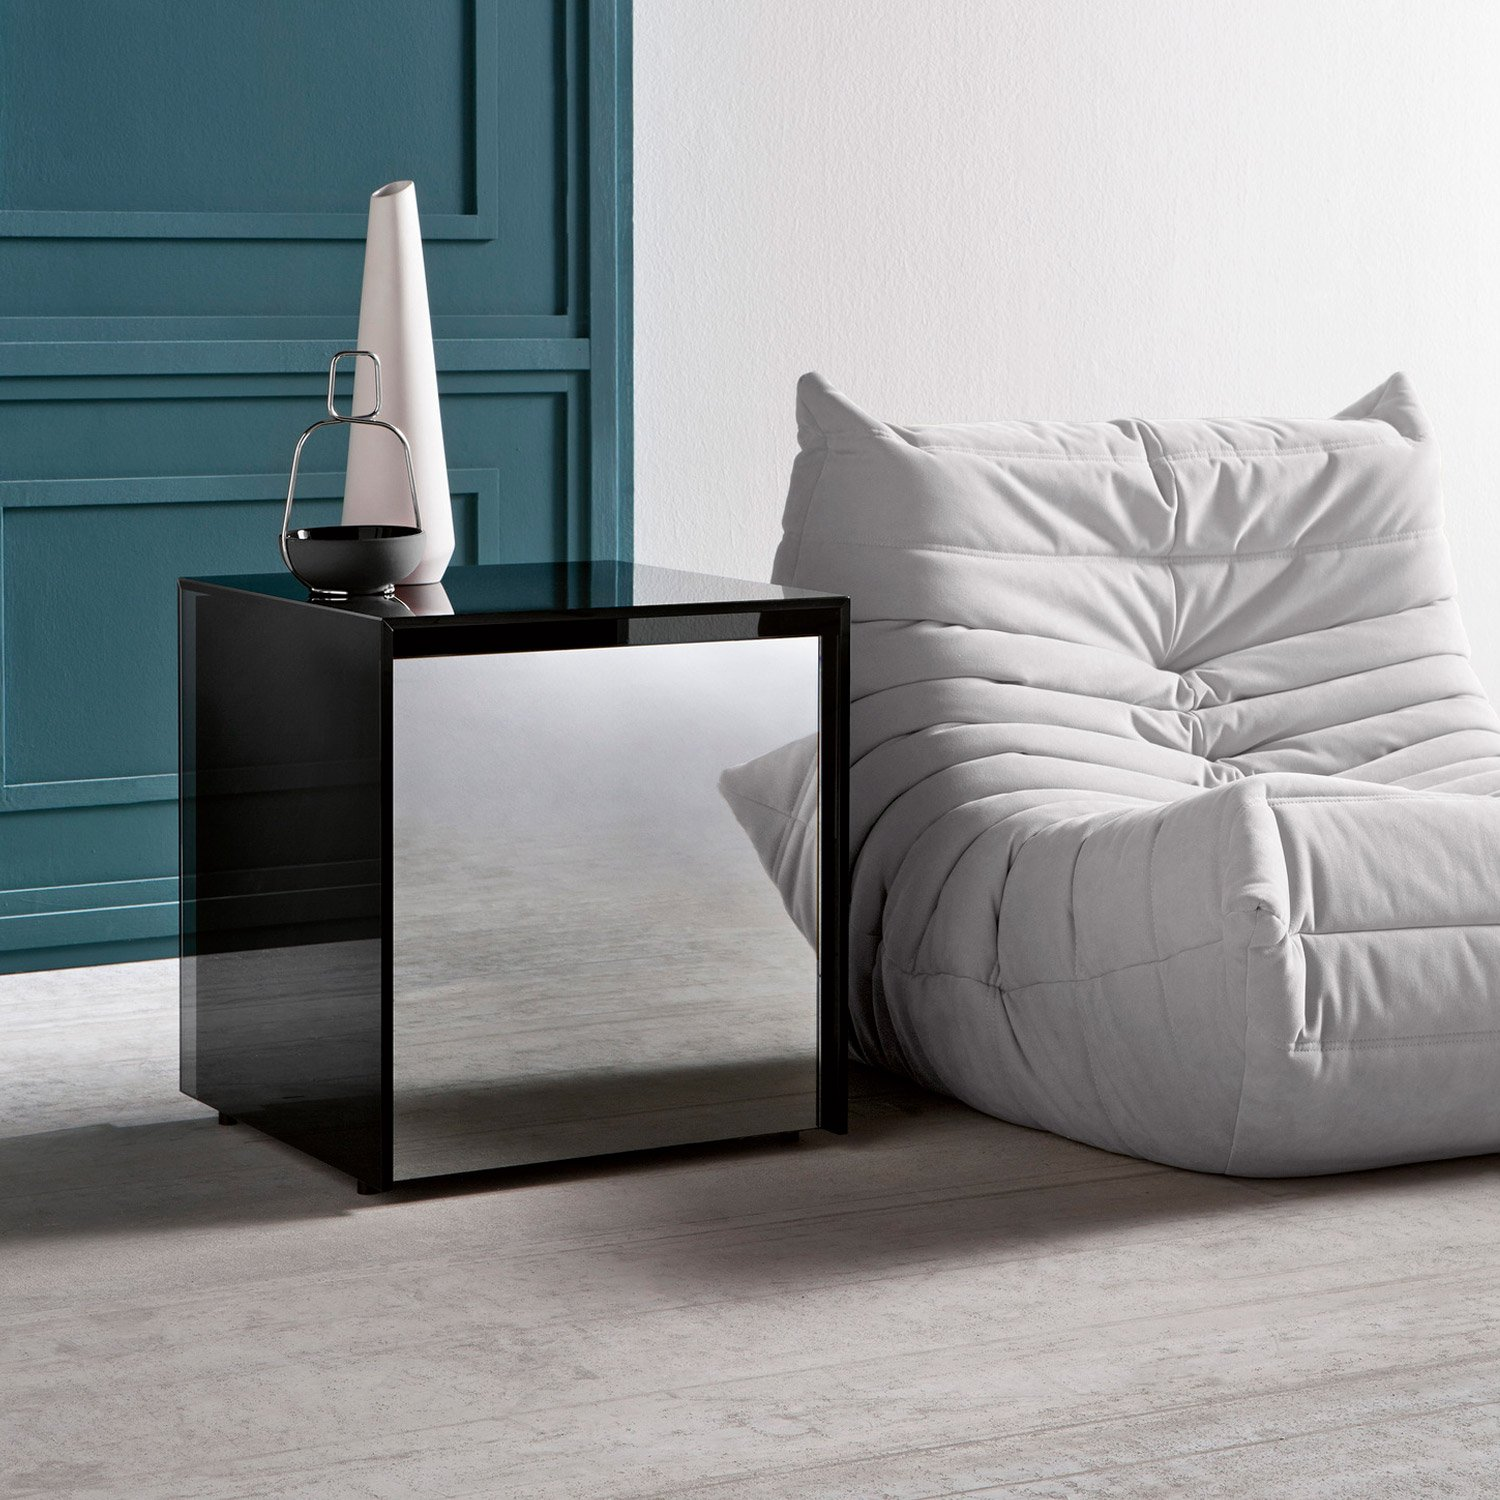 Frameless Glass Coffee Table: Ghotam Smoked Glass Table With Drawer